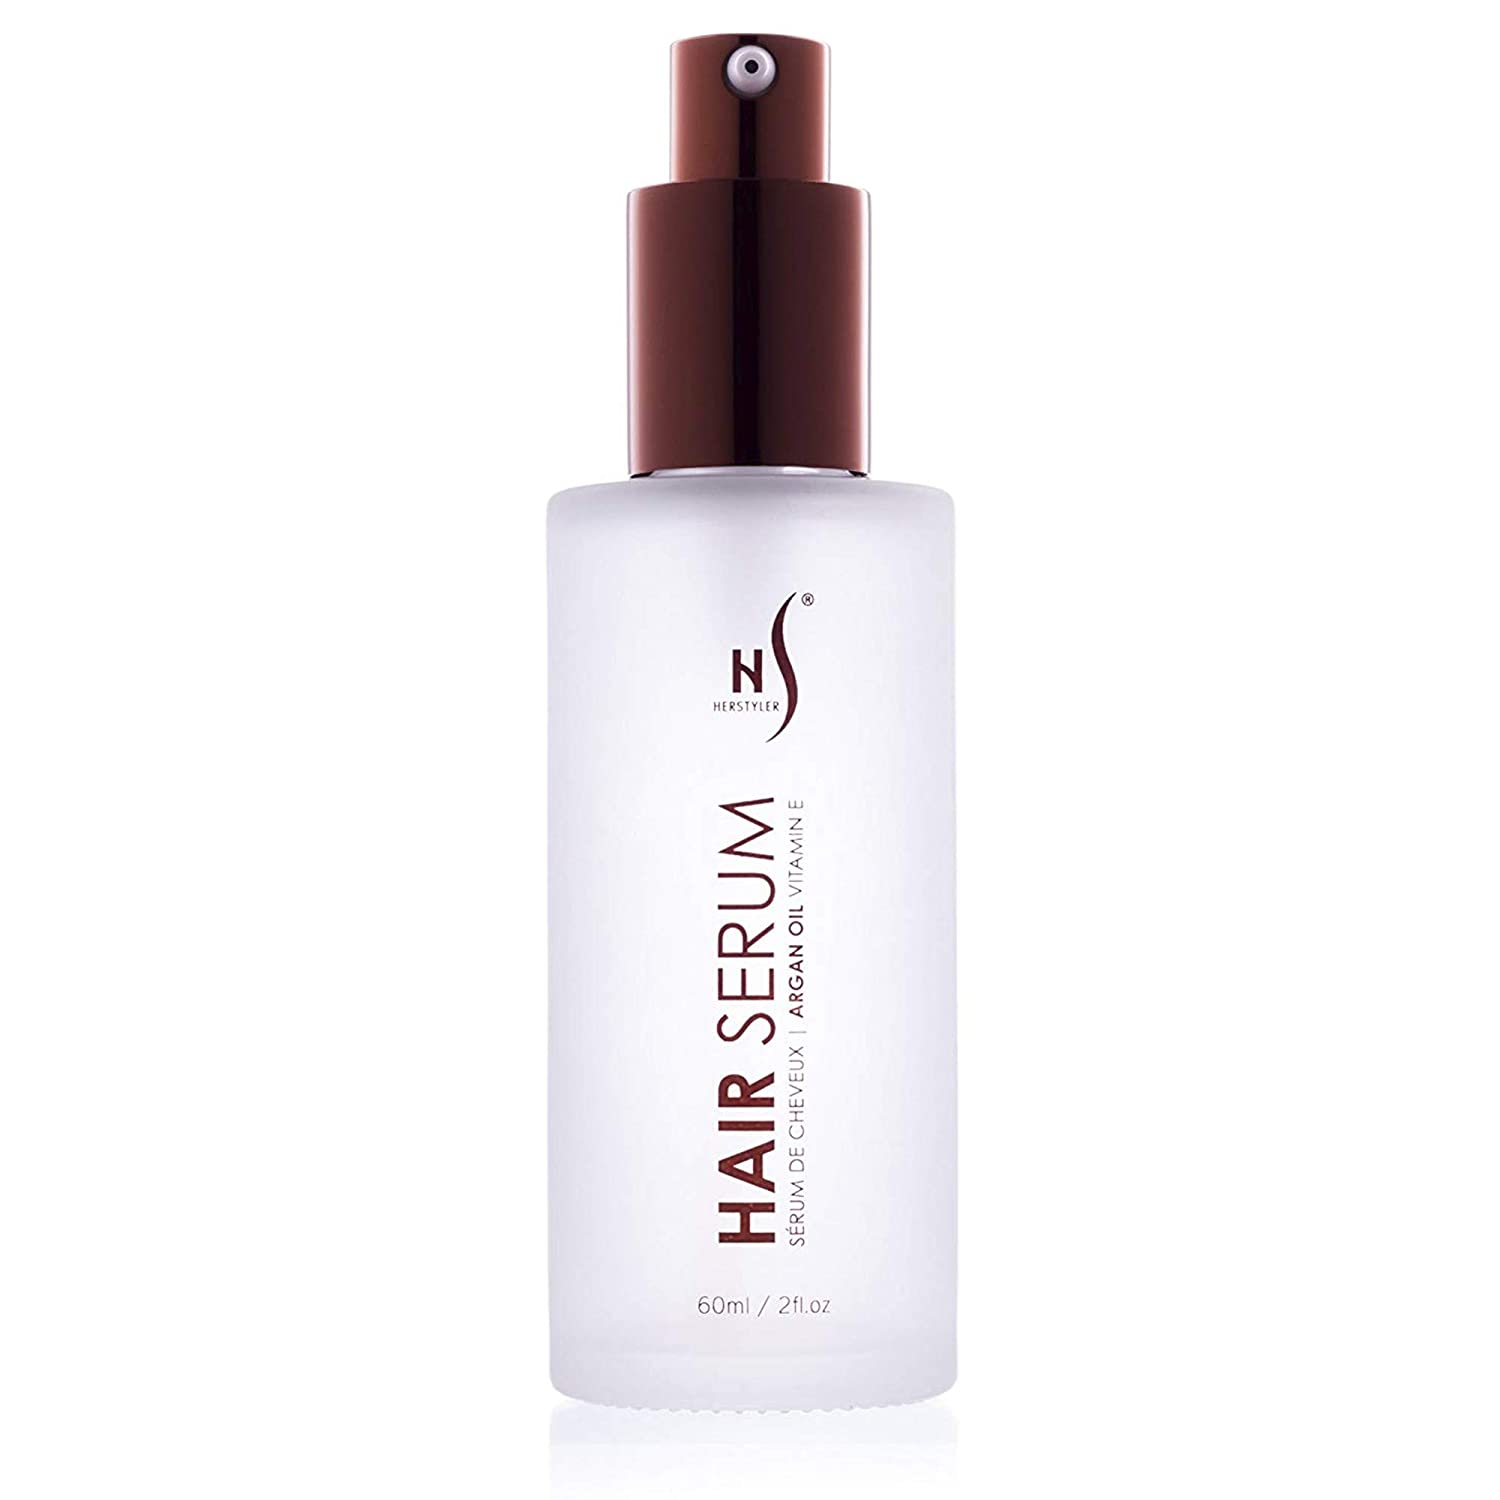 Herstyler Hair Repair Serum